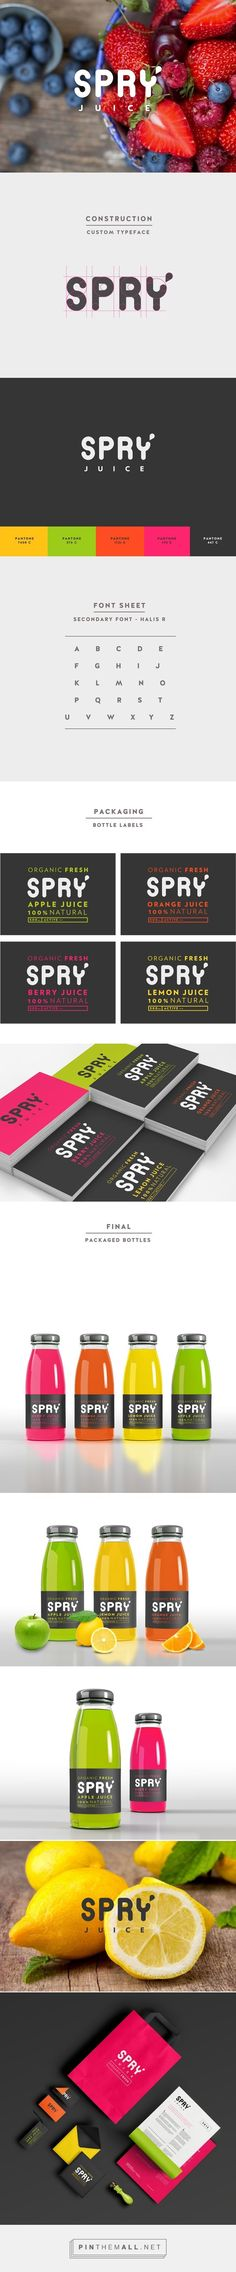 Spry Juice - Branding & Packaging on Behance - created via http://pinthemall.net: